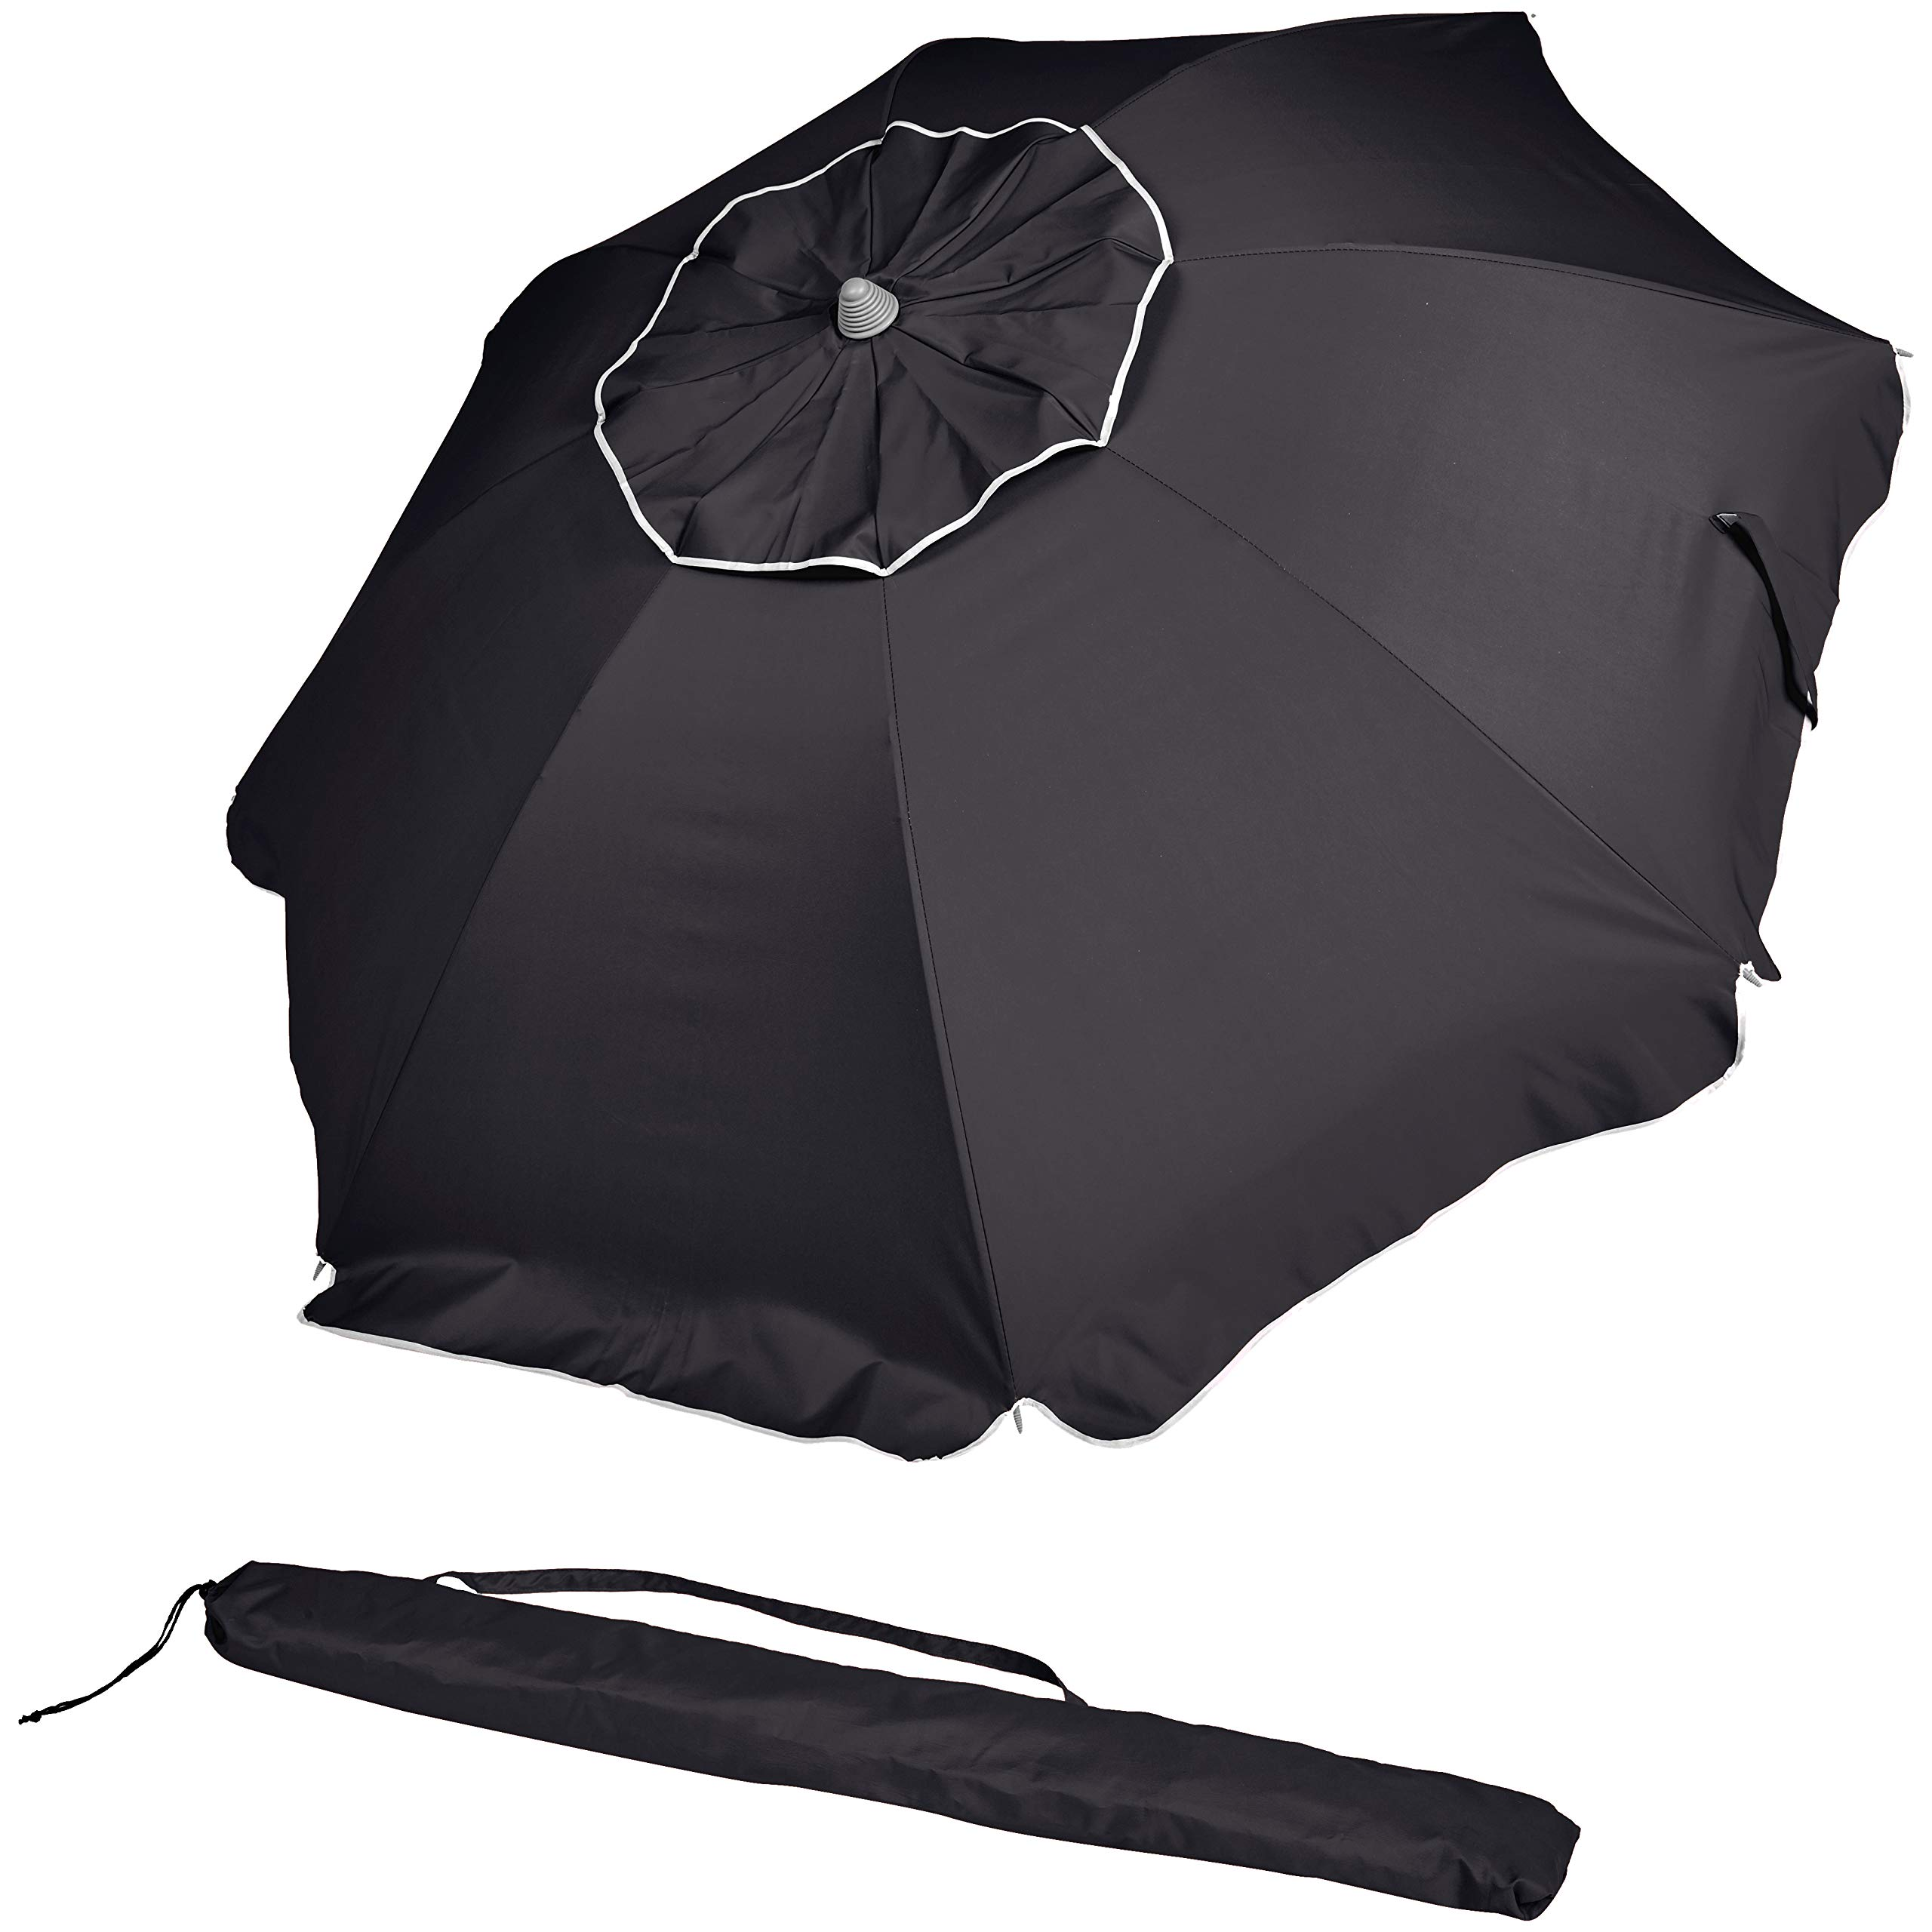 AmazonBasics Beach Umbrella - Black